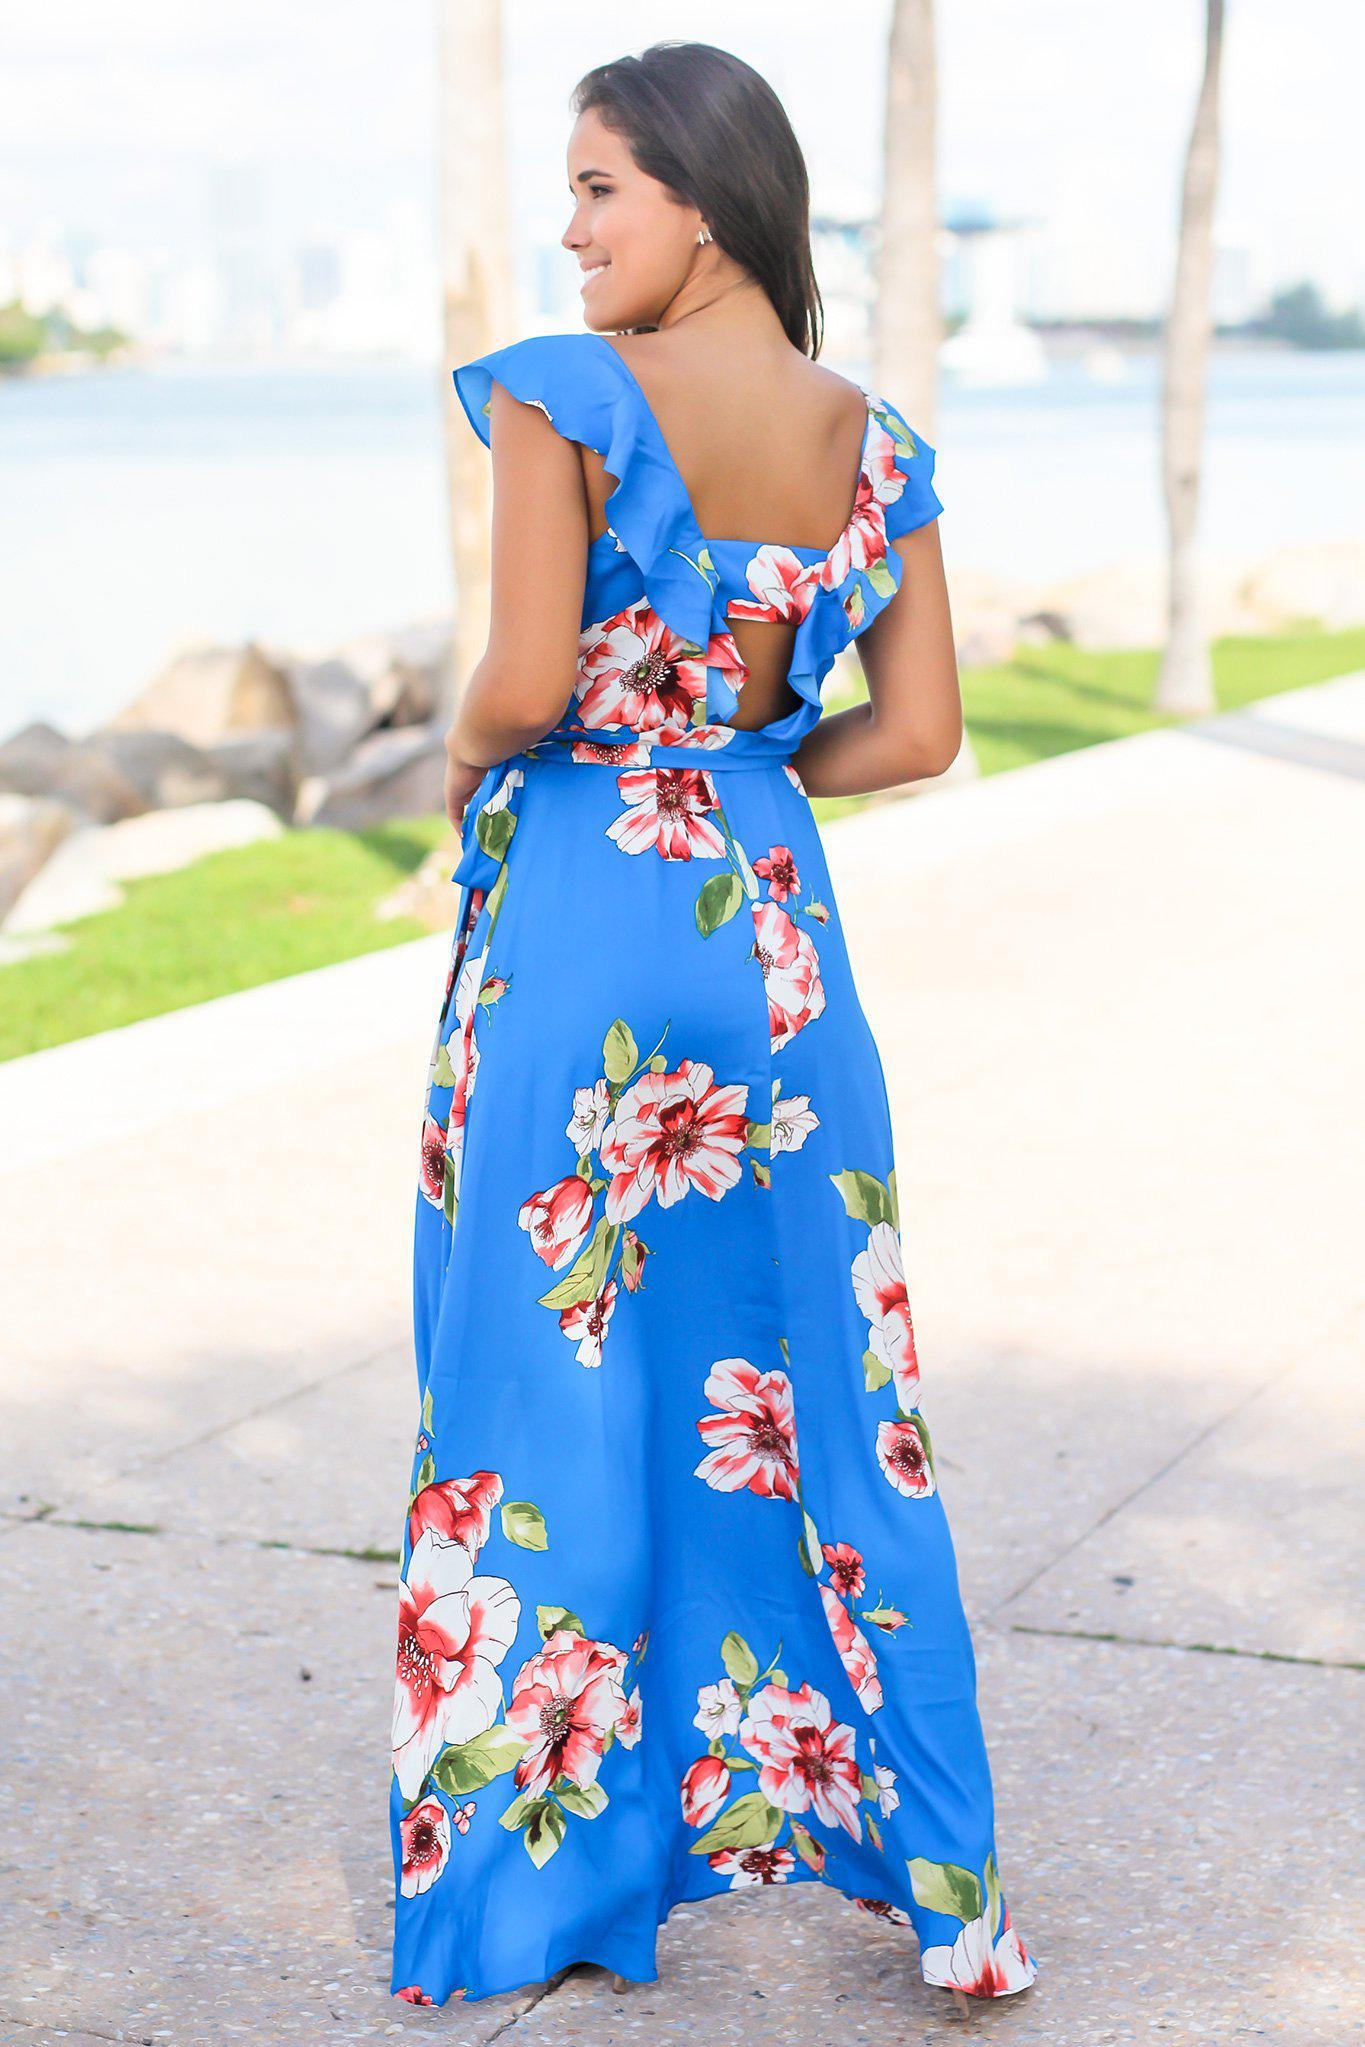 Royal Blue Floral Wrap Dress with Ruffles